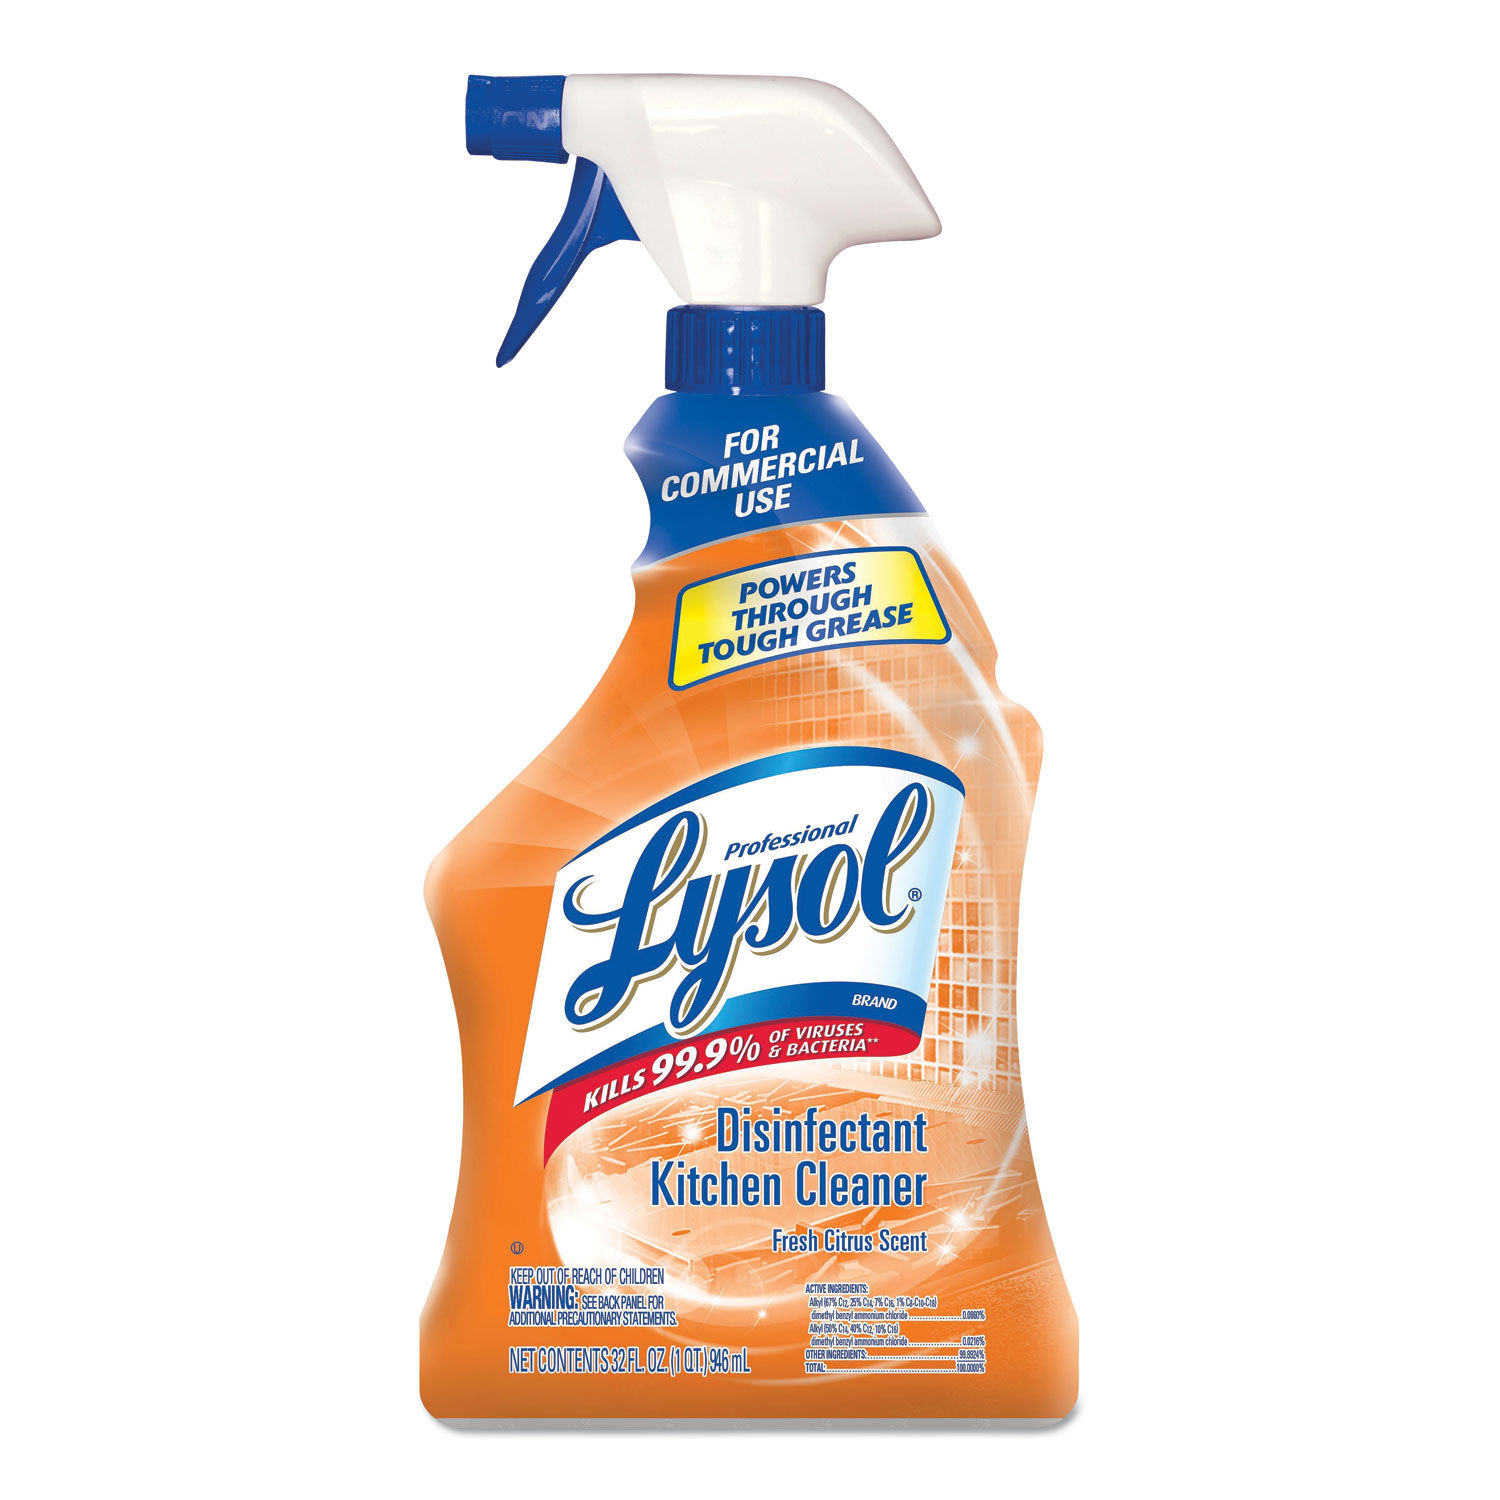 Kitchen Cleaner: Disinfectant Kitchen Cleaner By Professional LYSOL® Brand